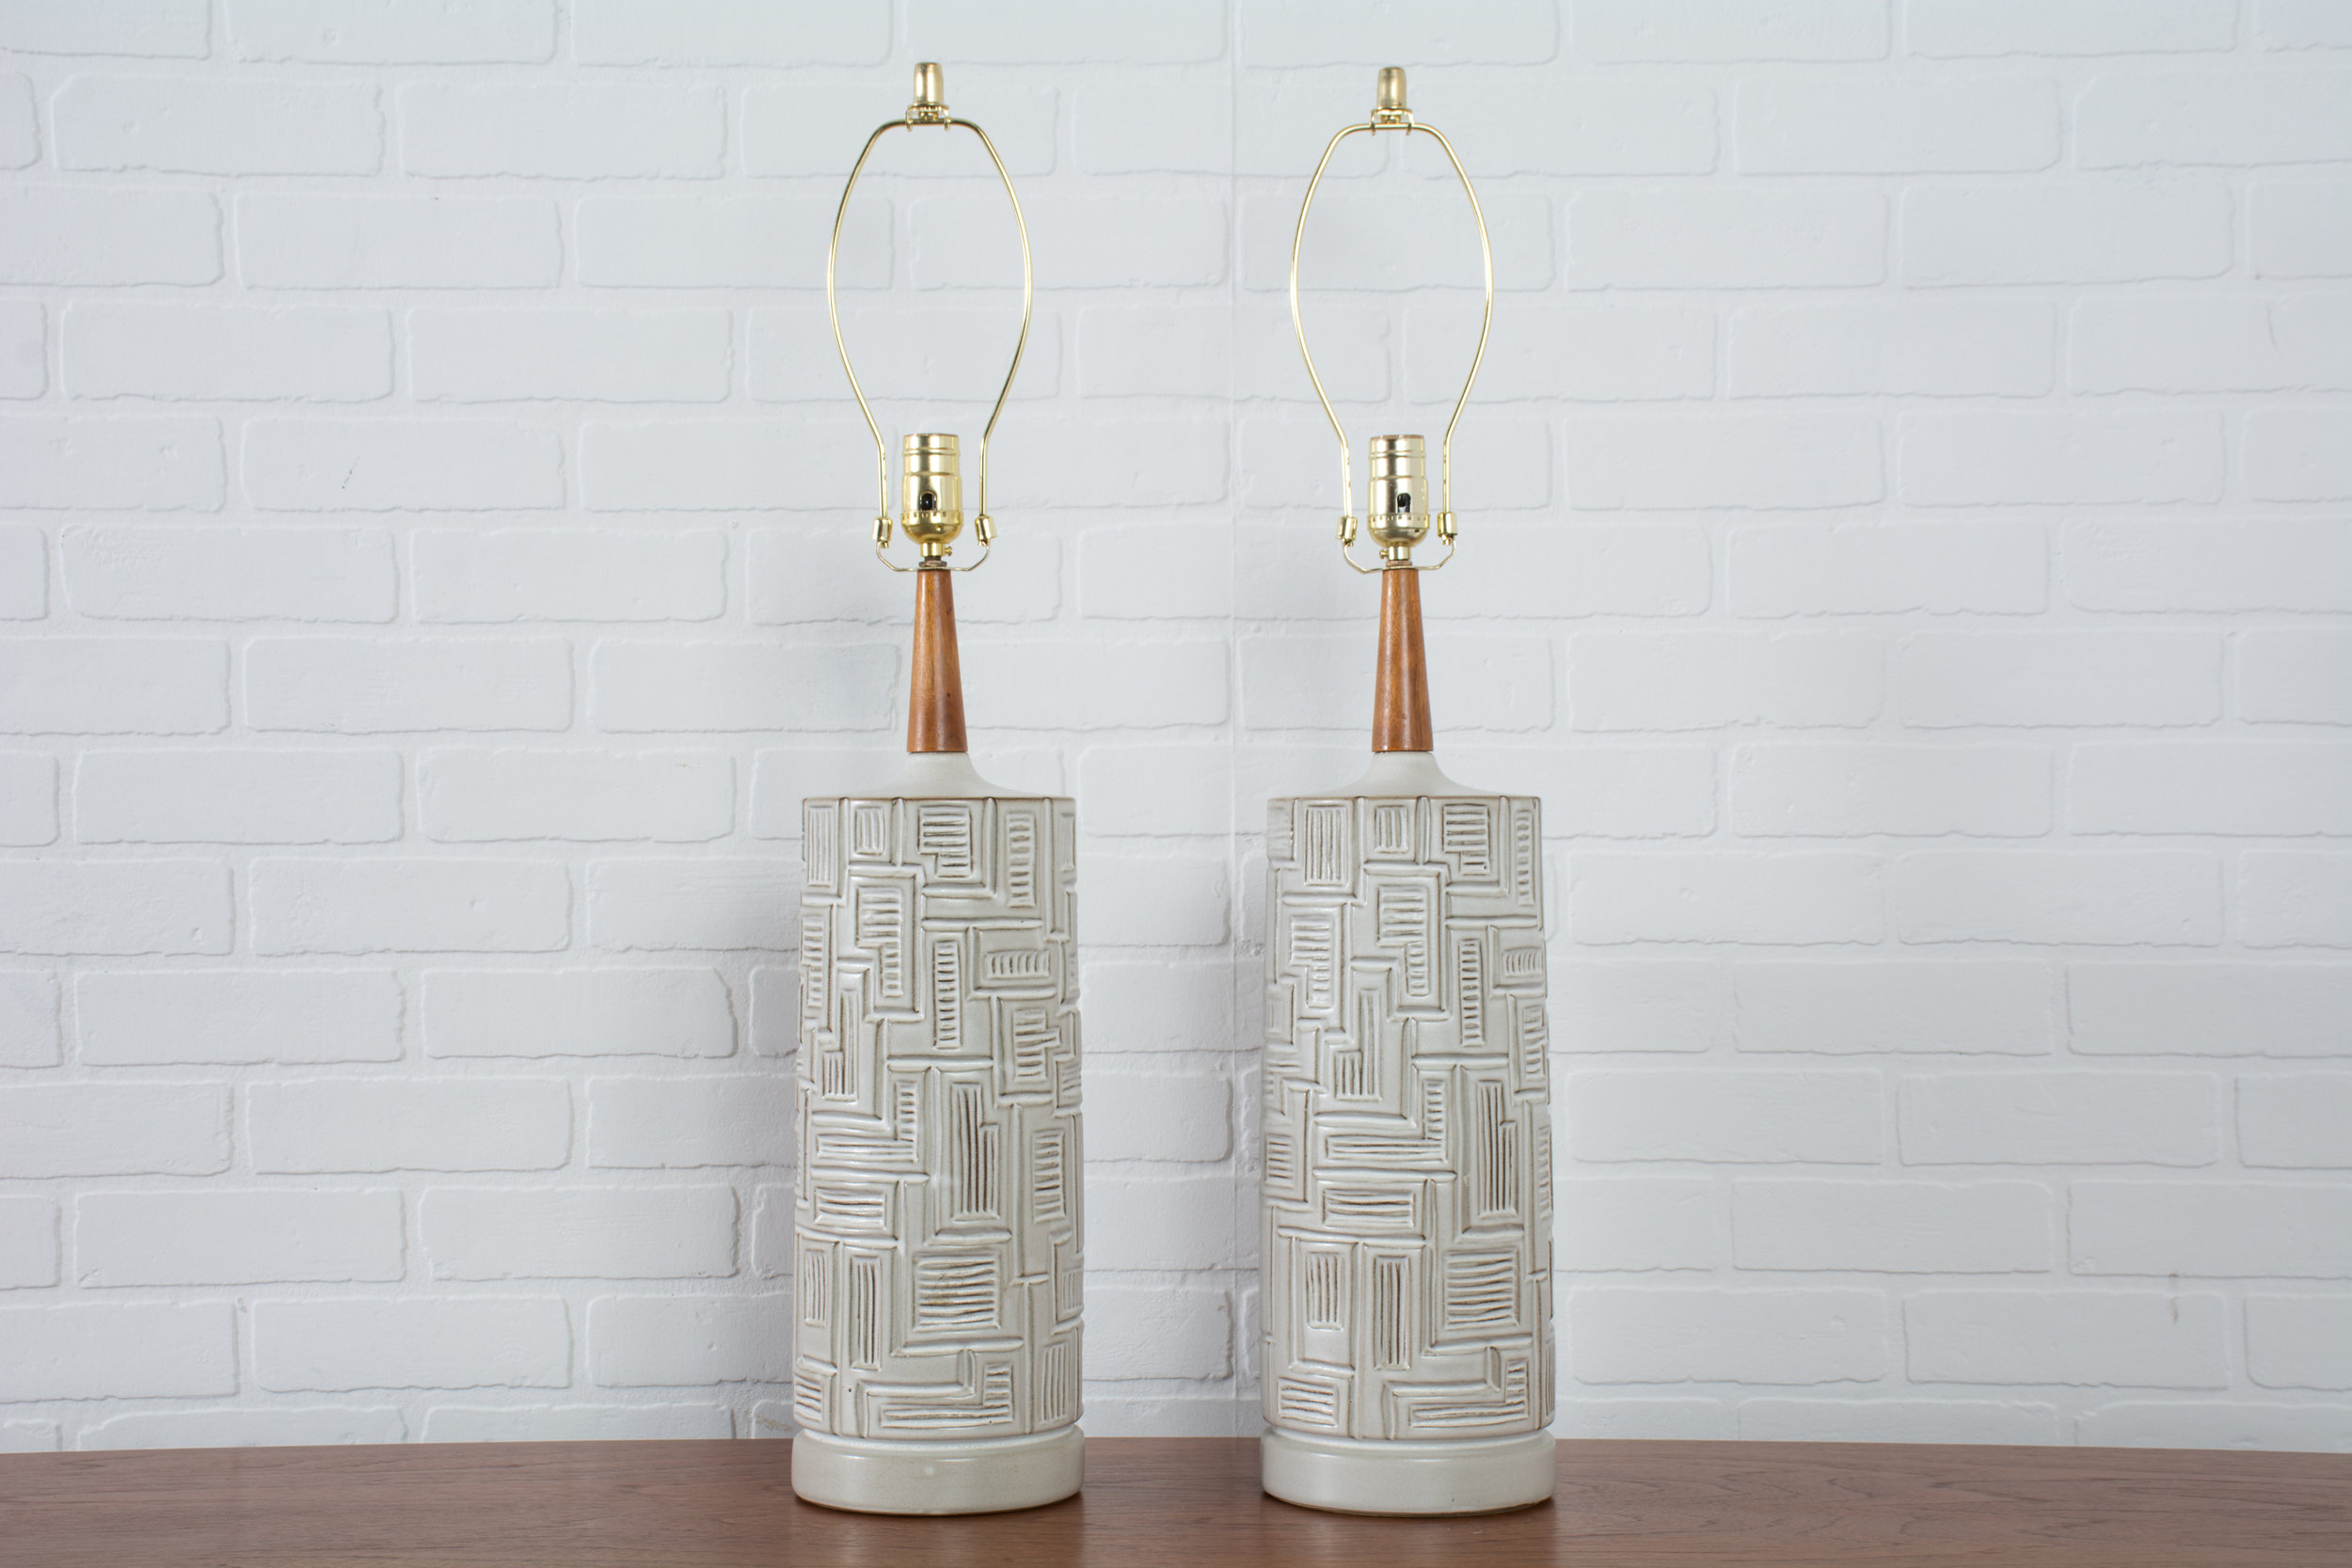 Pair of Vintage Midcentury Ceramic Table Lamps